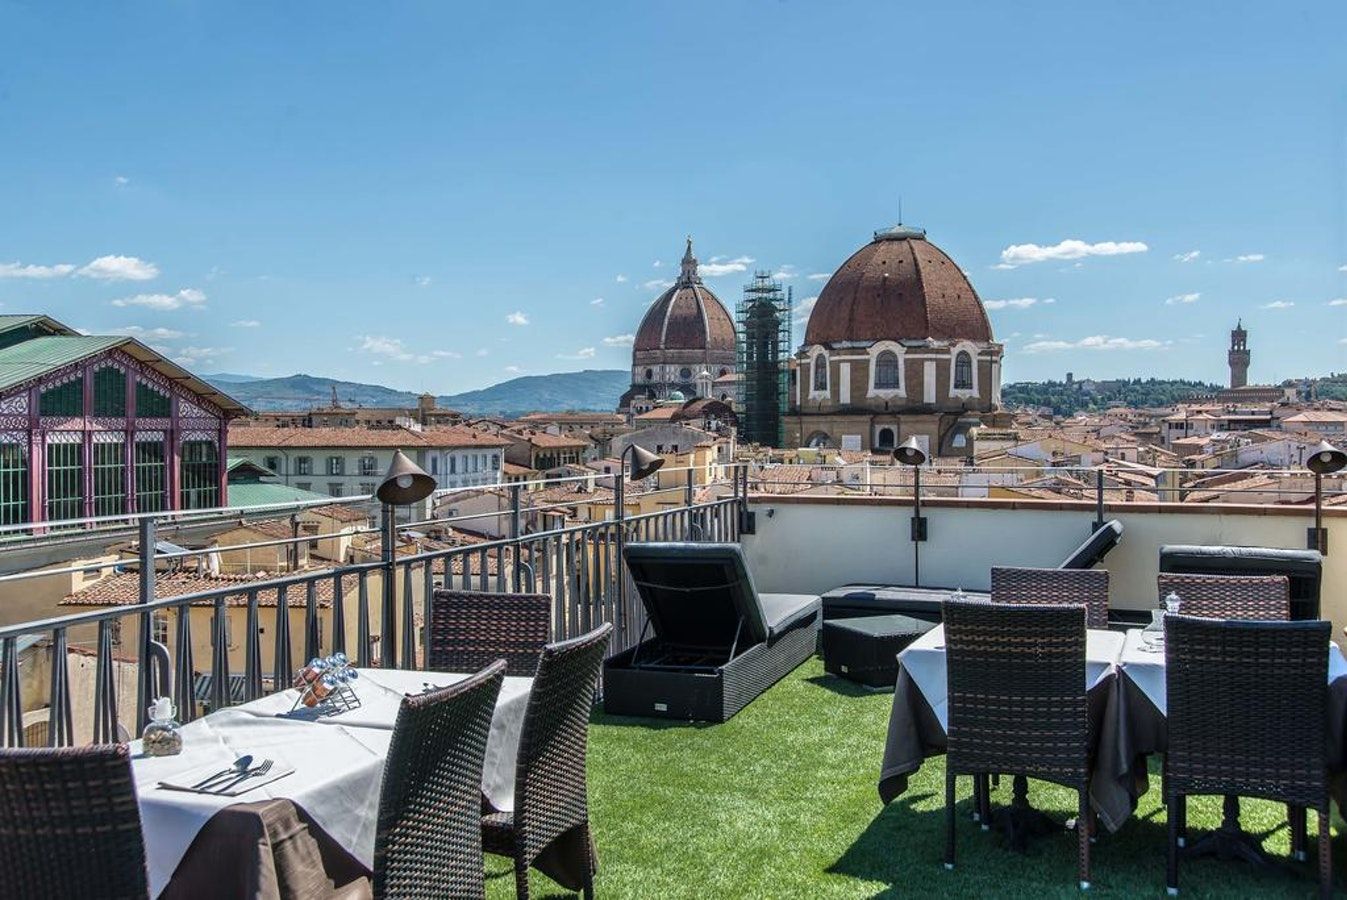 Machiavelli Palace Hotel In Florence Italy Is Close To Smn